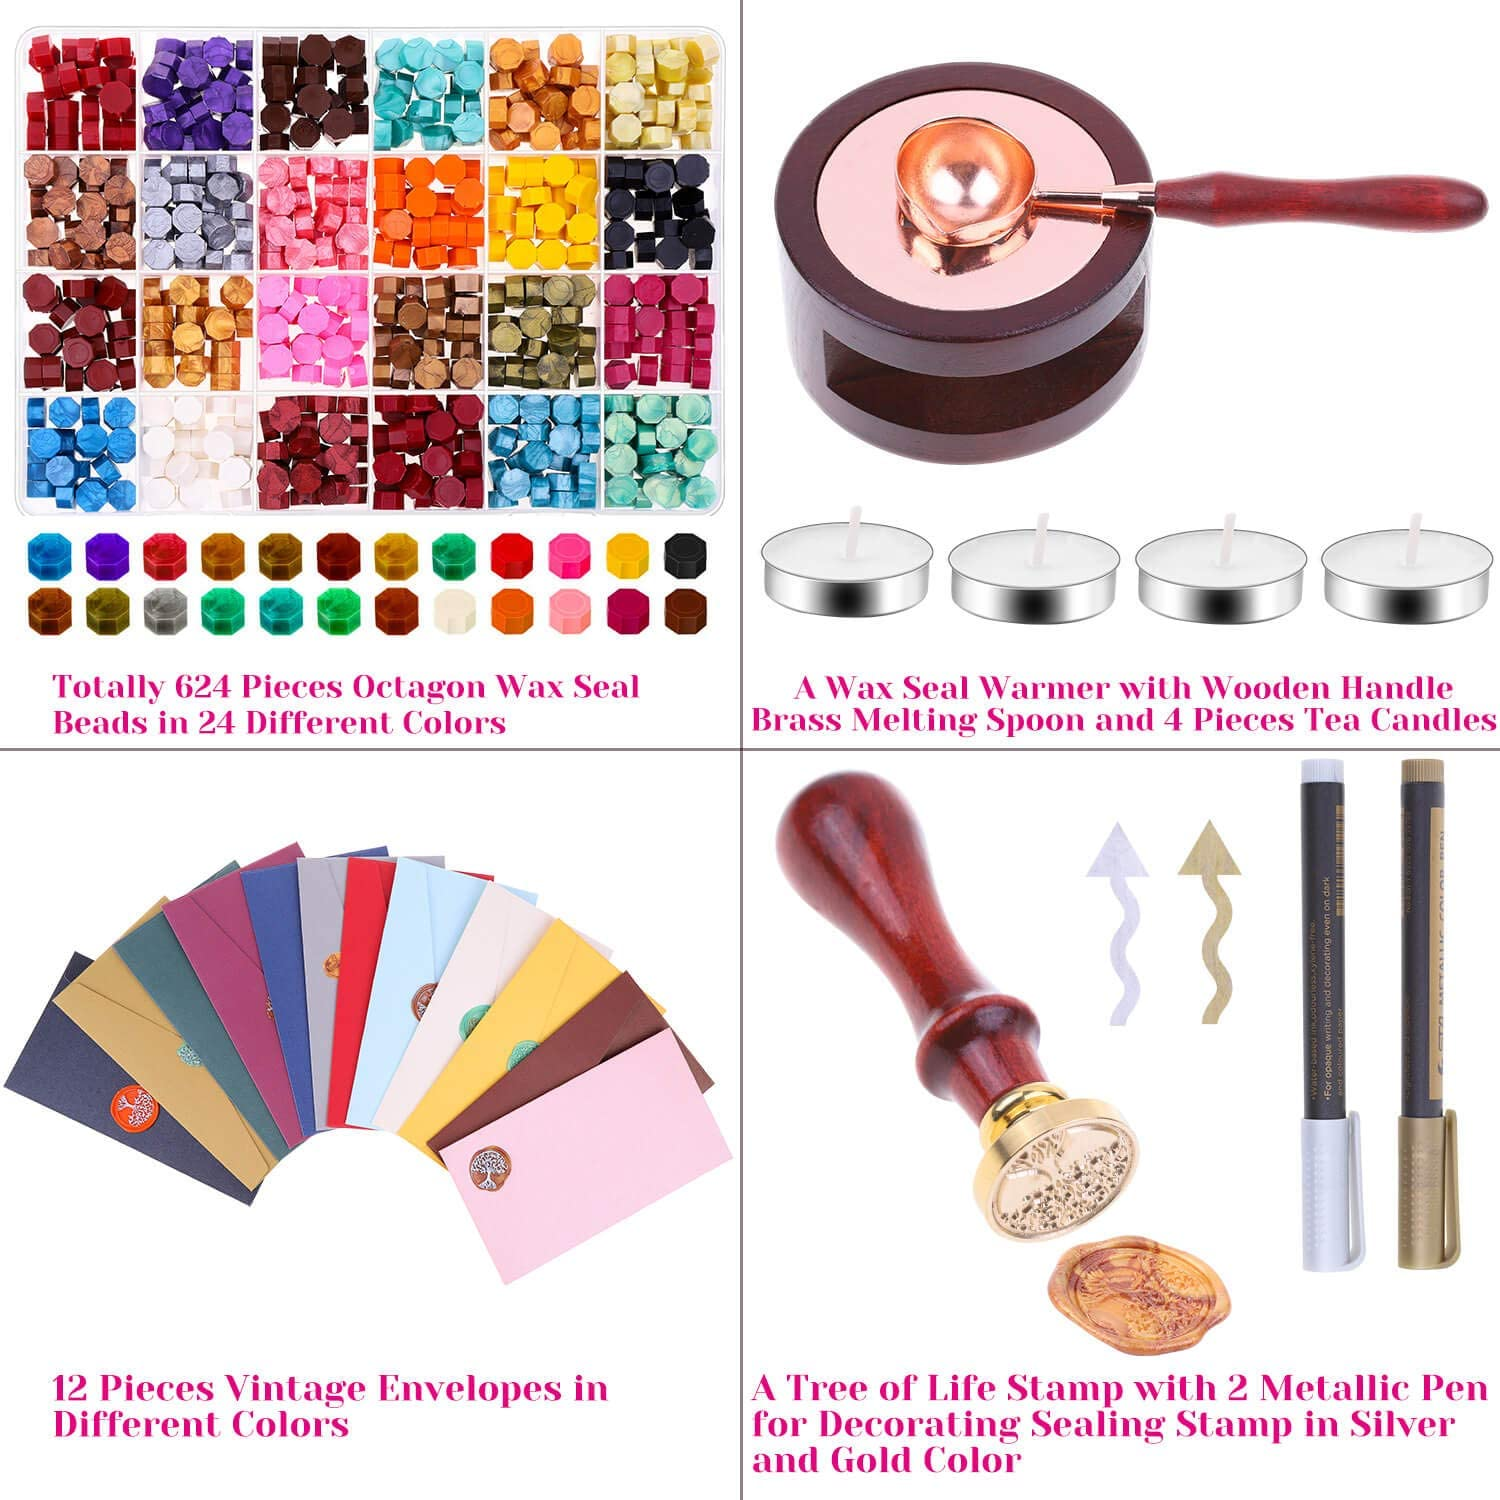 Sealing Wax Warmer Crafts and Decoration Anezus 645pcs Wax Letter Seal Kit with Wax Seal Beads Vintage Envelopes Sealing Wax Sealing Envelopes Wax Stamp and Metallic Pen for Wax Seal